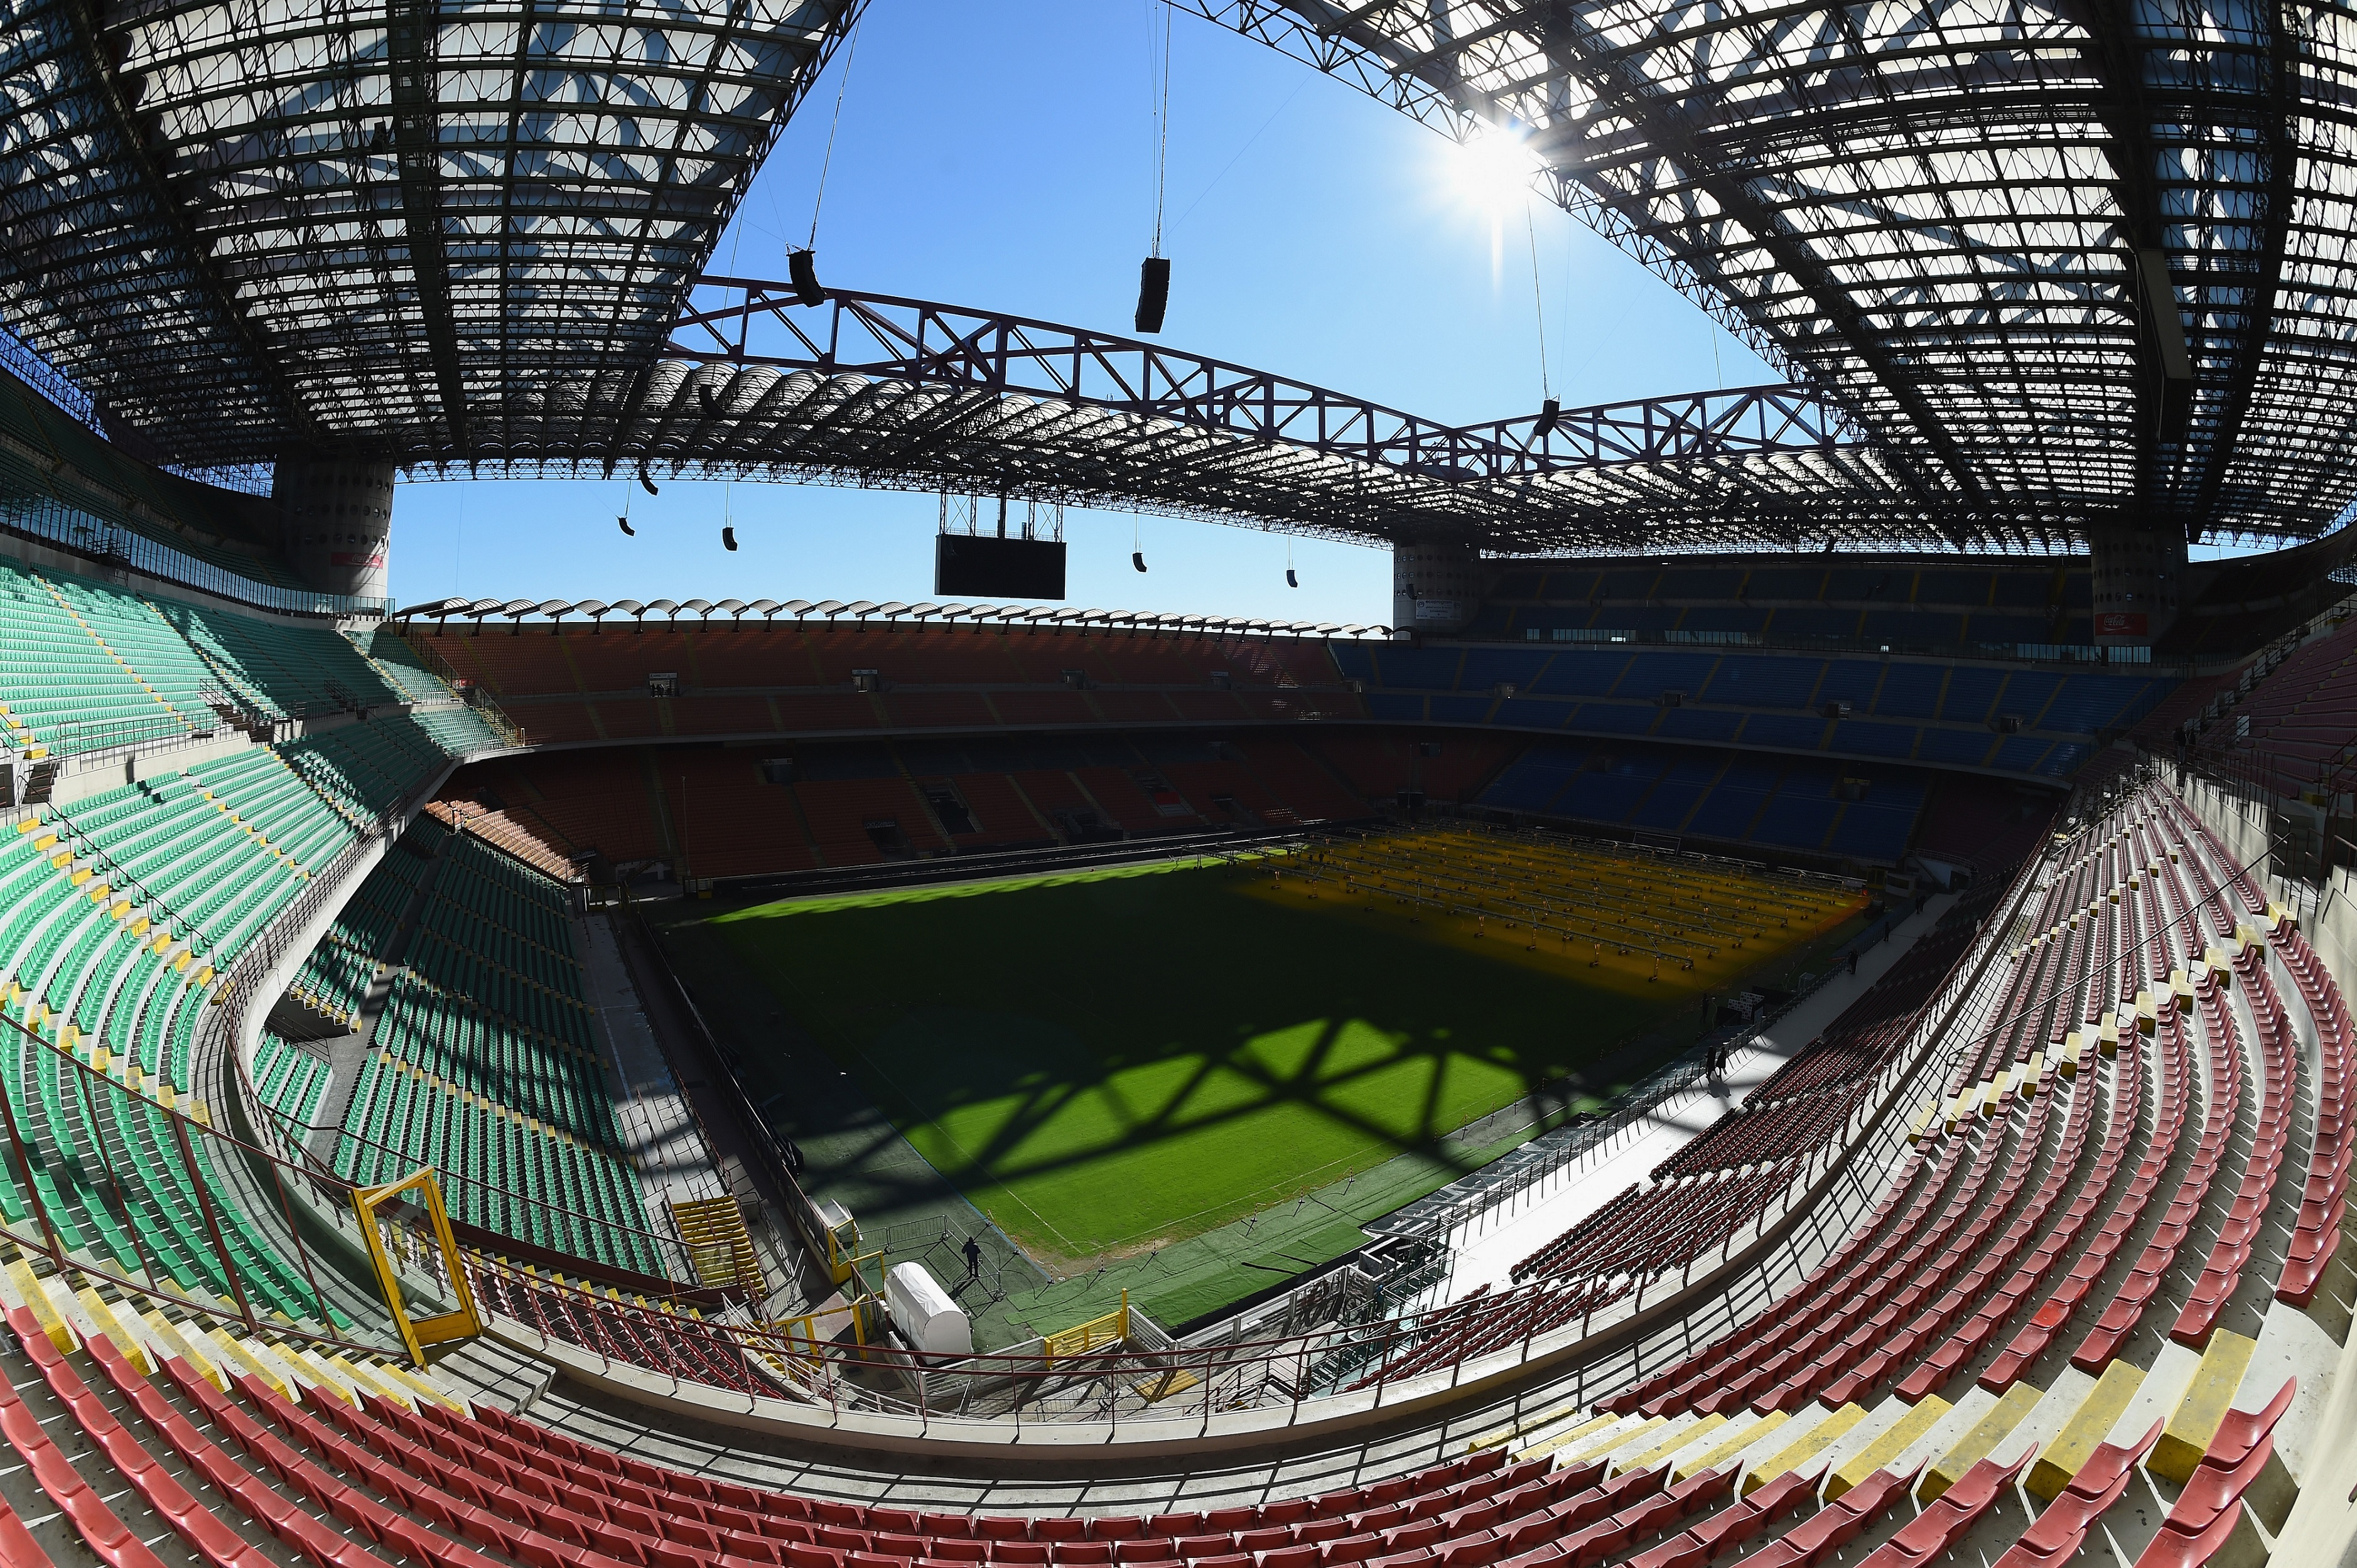 MILAN, ITALY - FEBRUARY 10: A view of the inside of Stadio Giuseppe Meazza venue for the UEFA Champions League Final 2016 on February 10, 2016 in Milan, Italy. (Photo by Shaun Botterill/Getty Images)